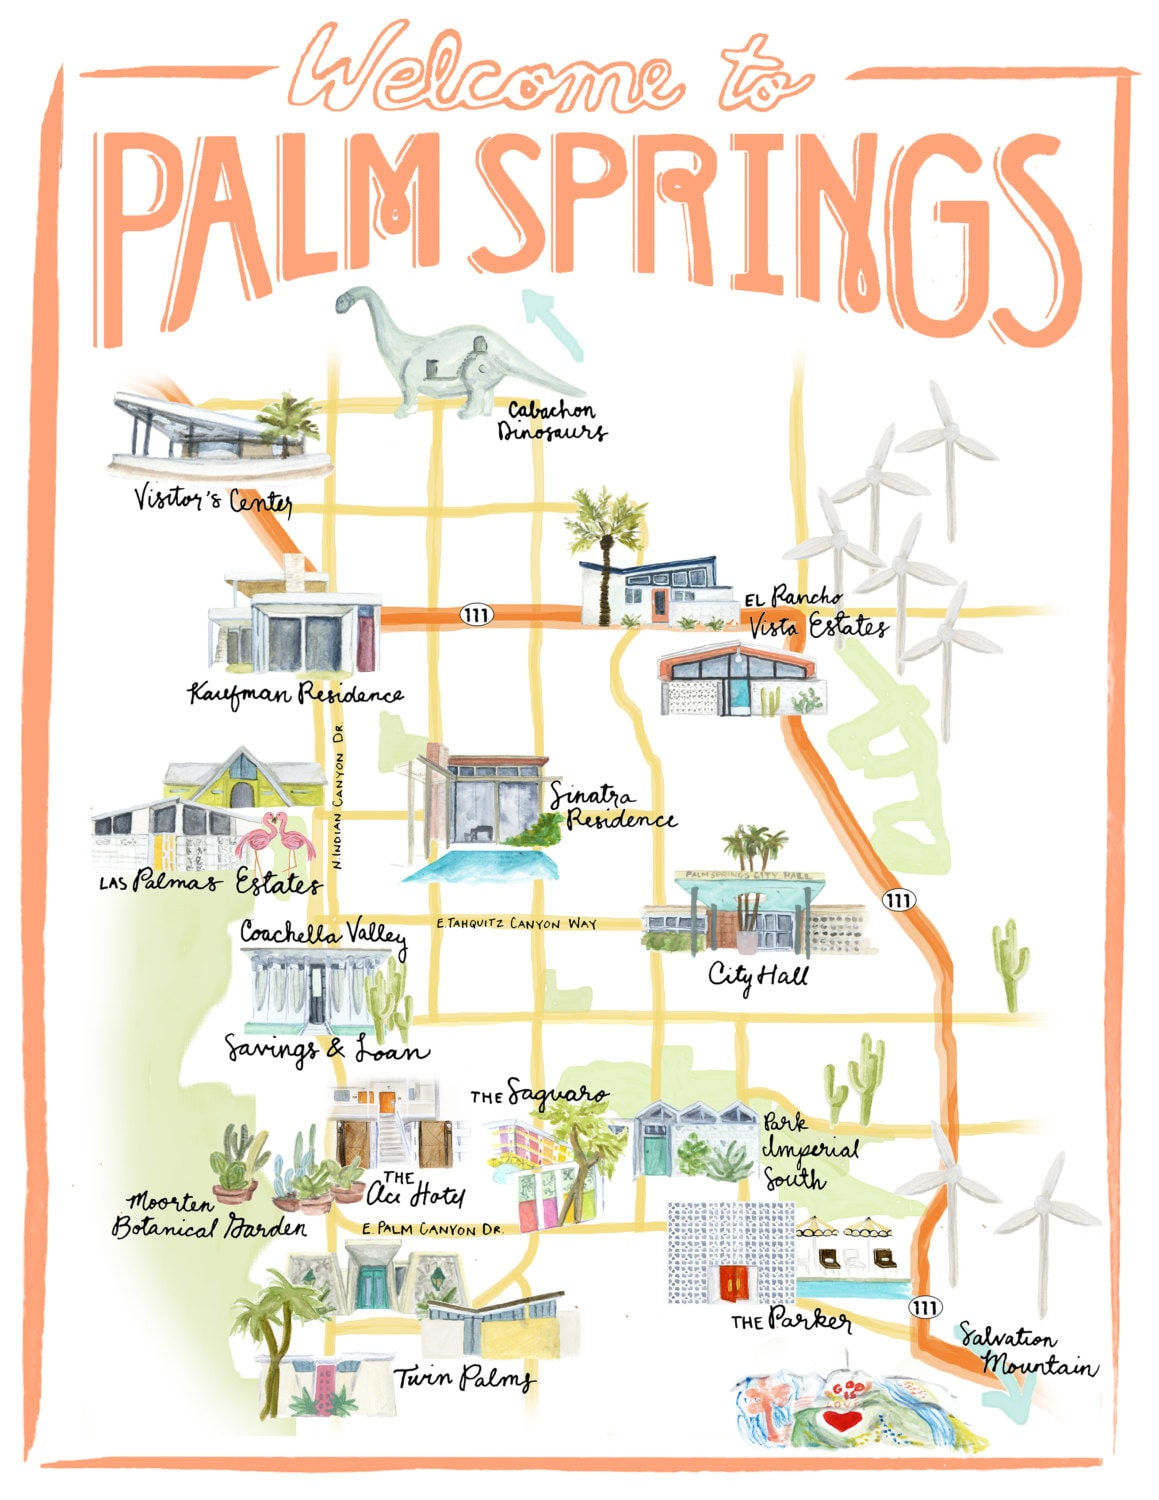 palm springs california illustrated travel map  print of an  - palm springs california illustrated travel map  print of an originalwatercolor